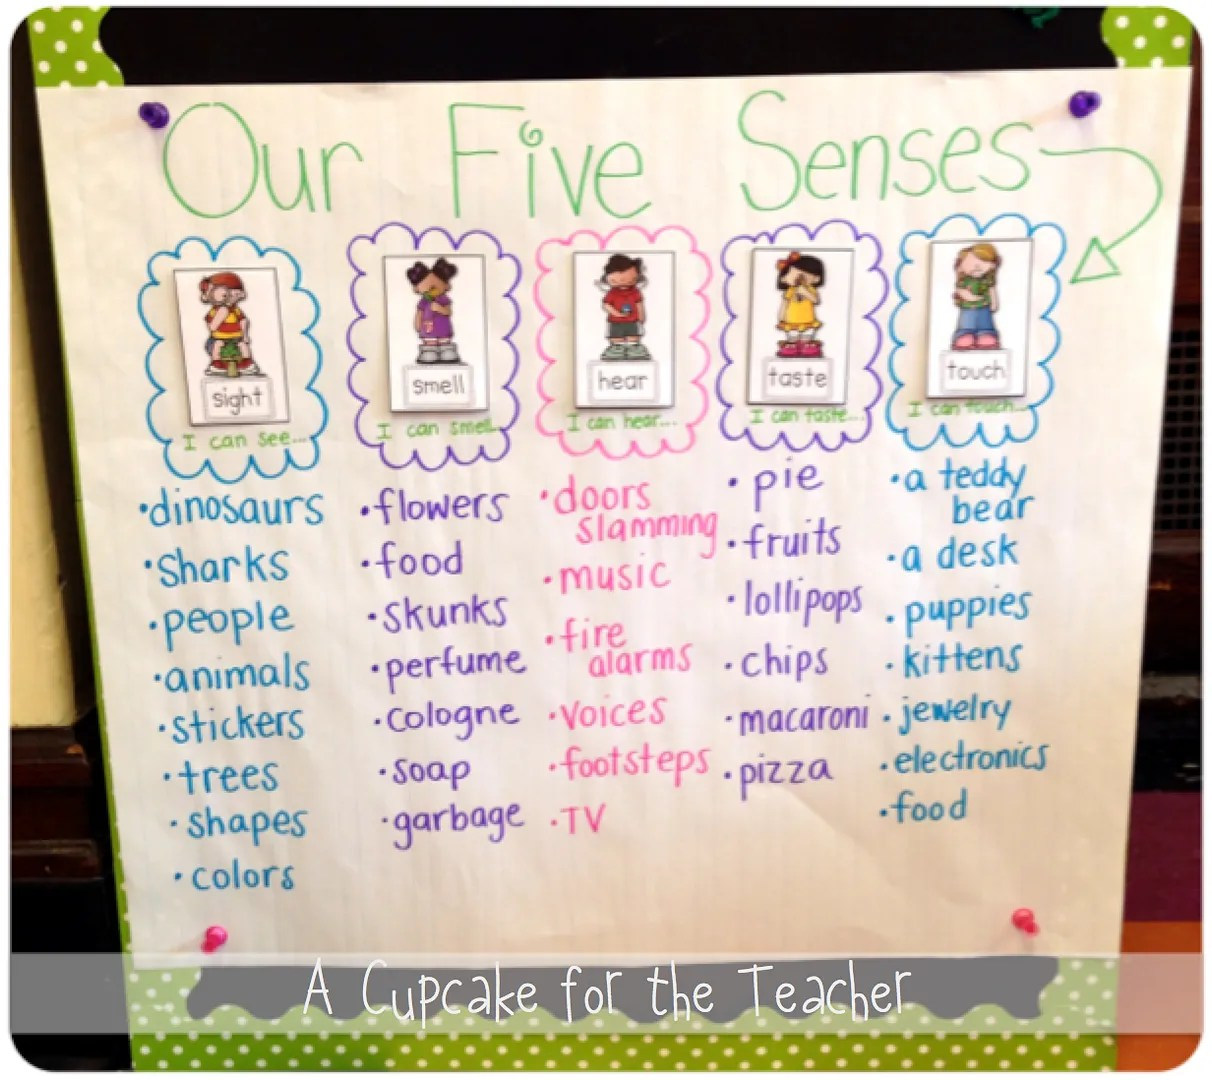 We Also Sang And Sang And Sang A Five Senses Song